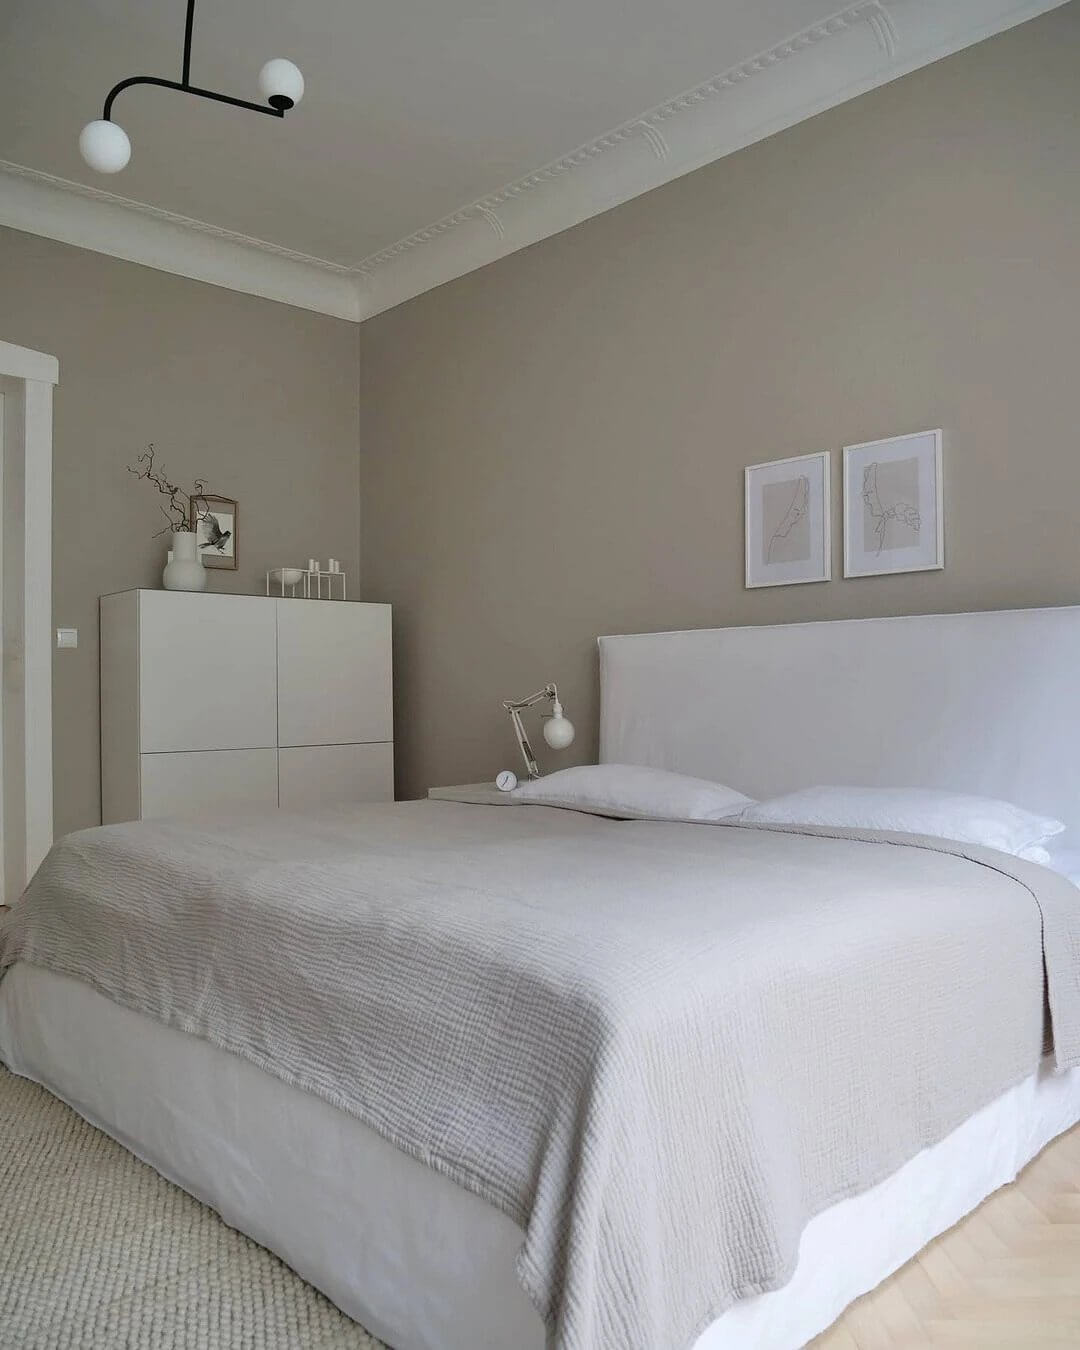 12. Almost sterile interior with white textiles and furniture